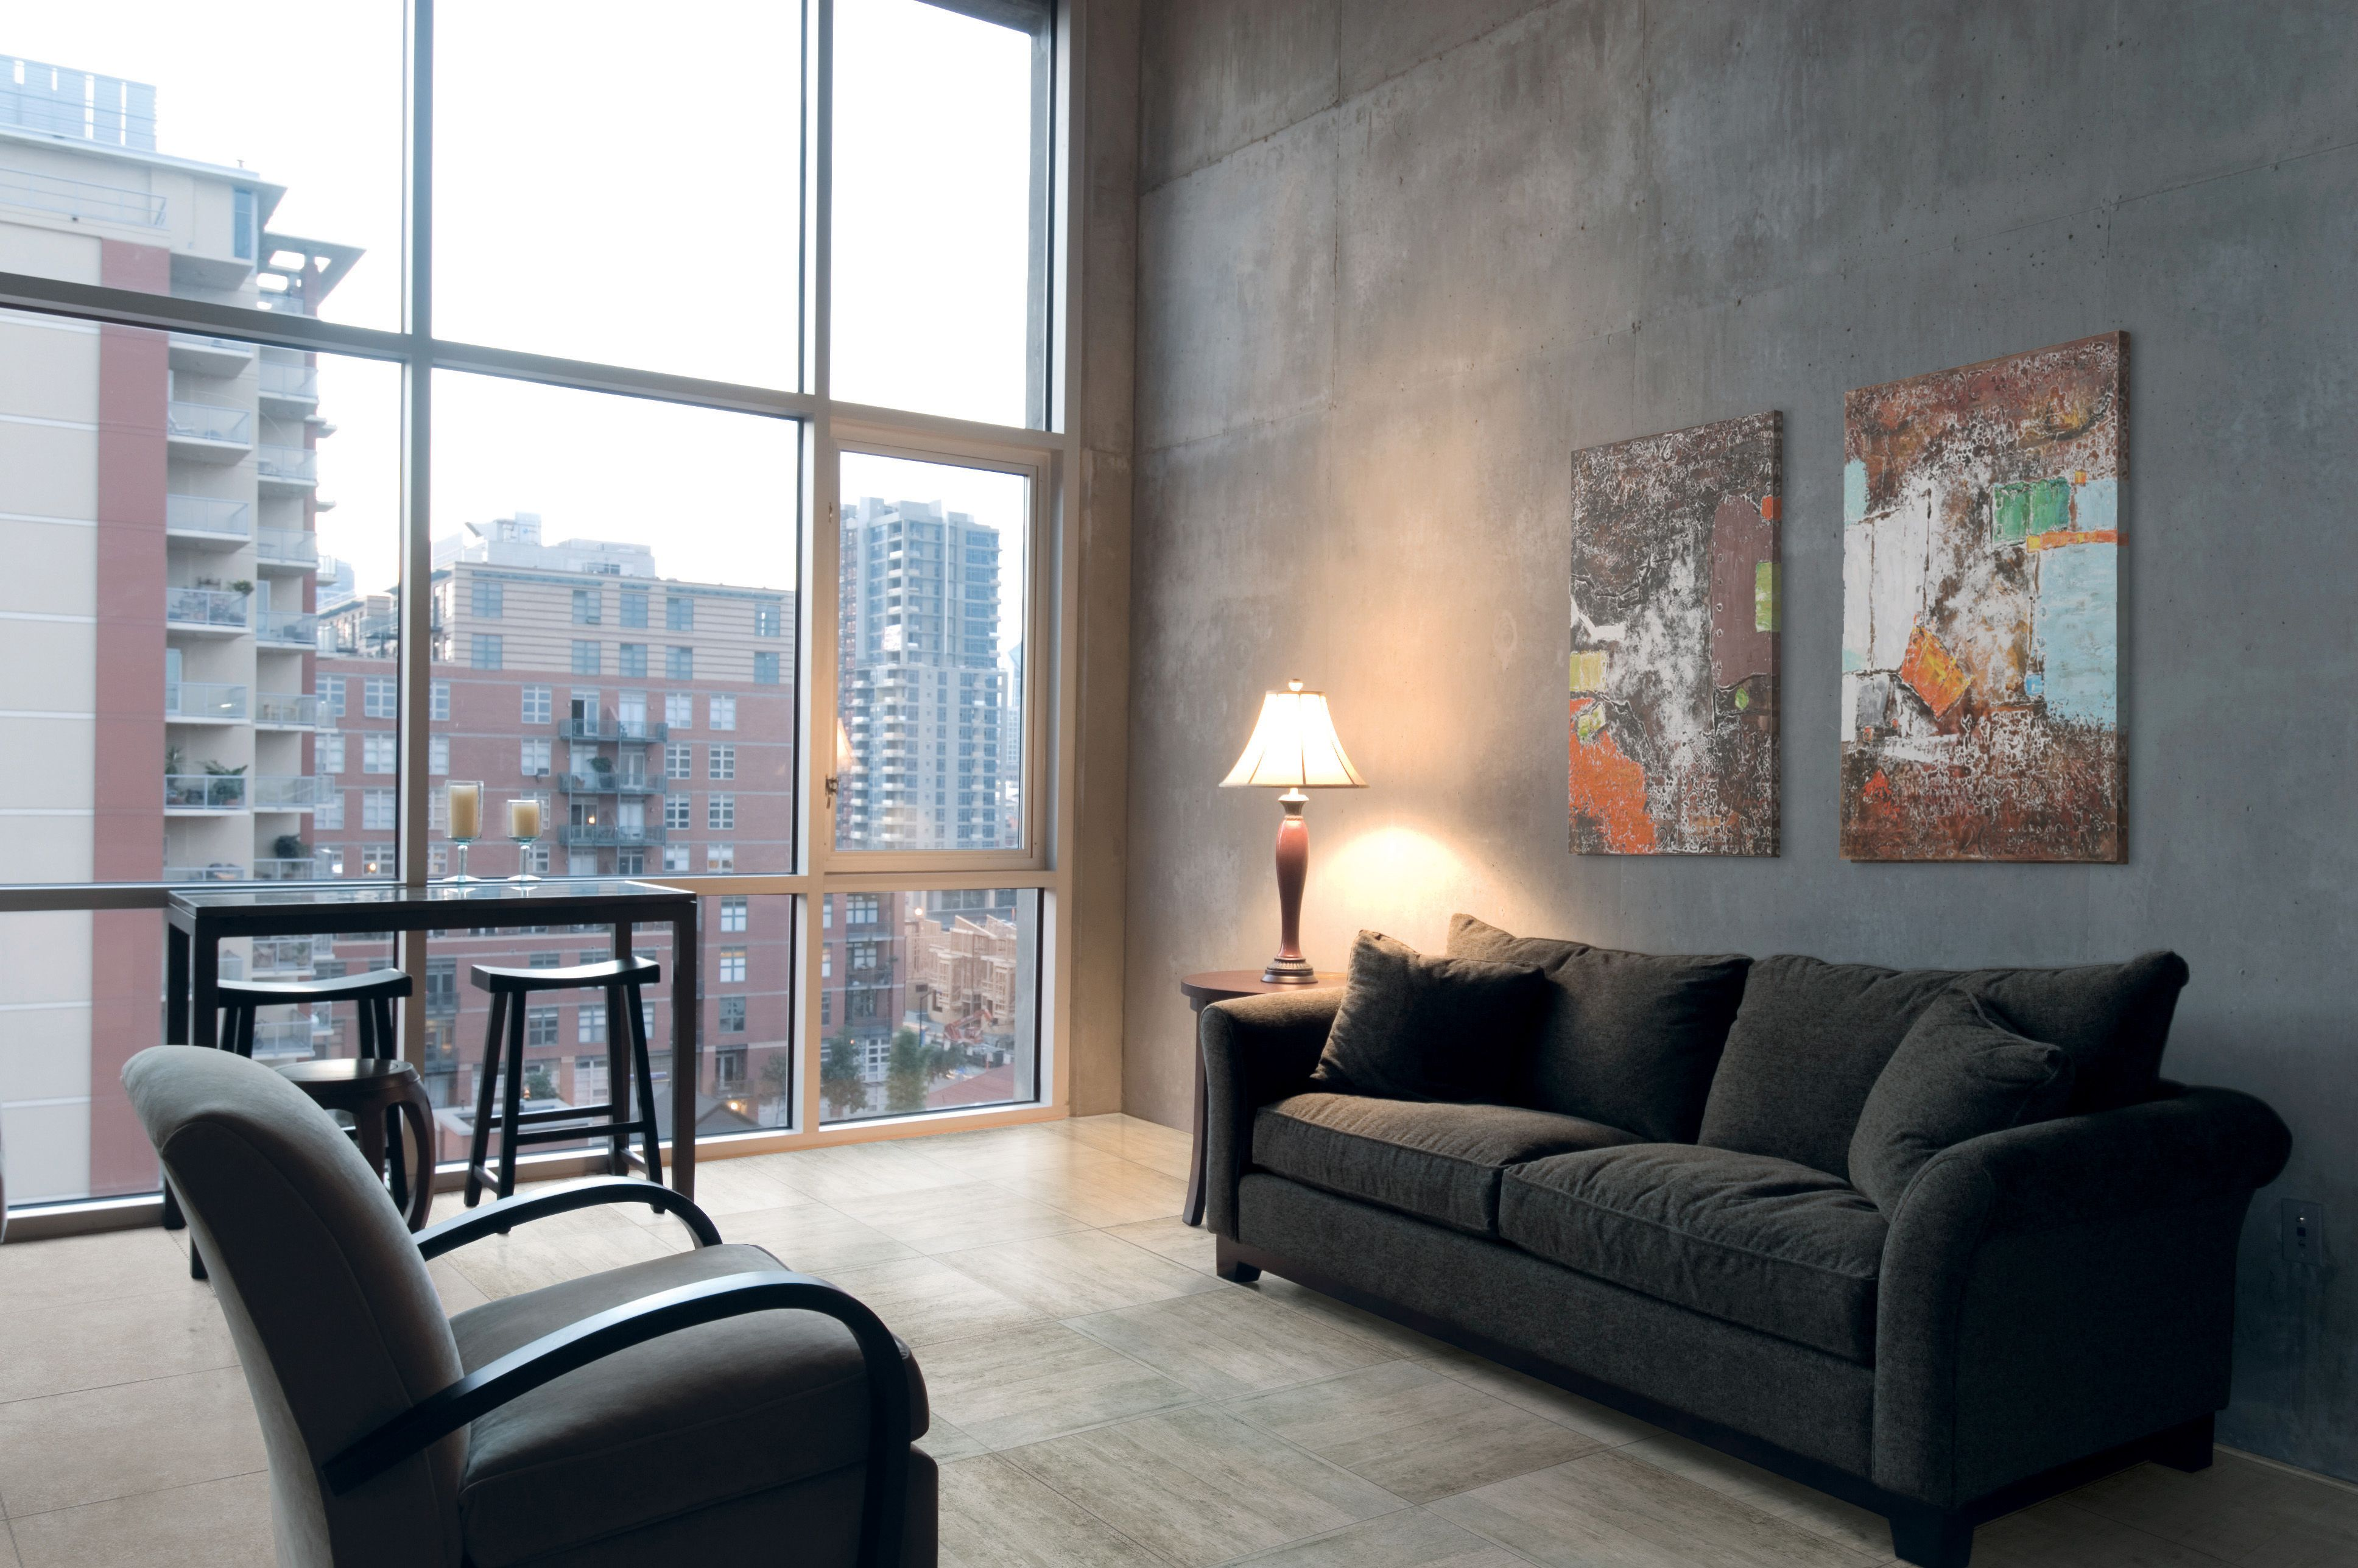 A condo living room overlooking the city has a modern look with our